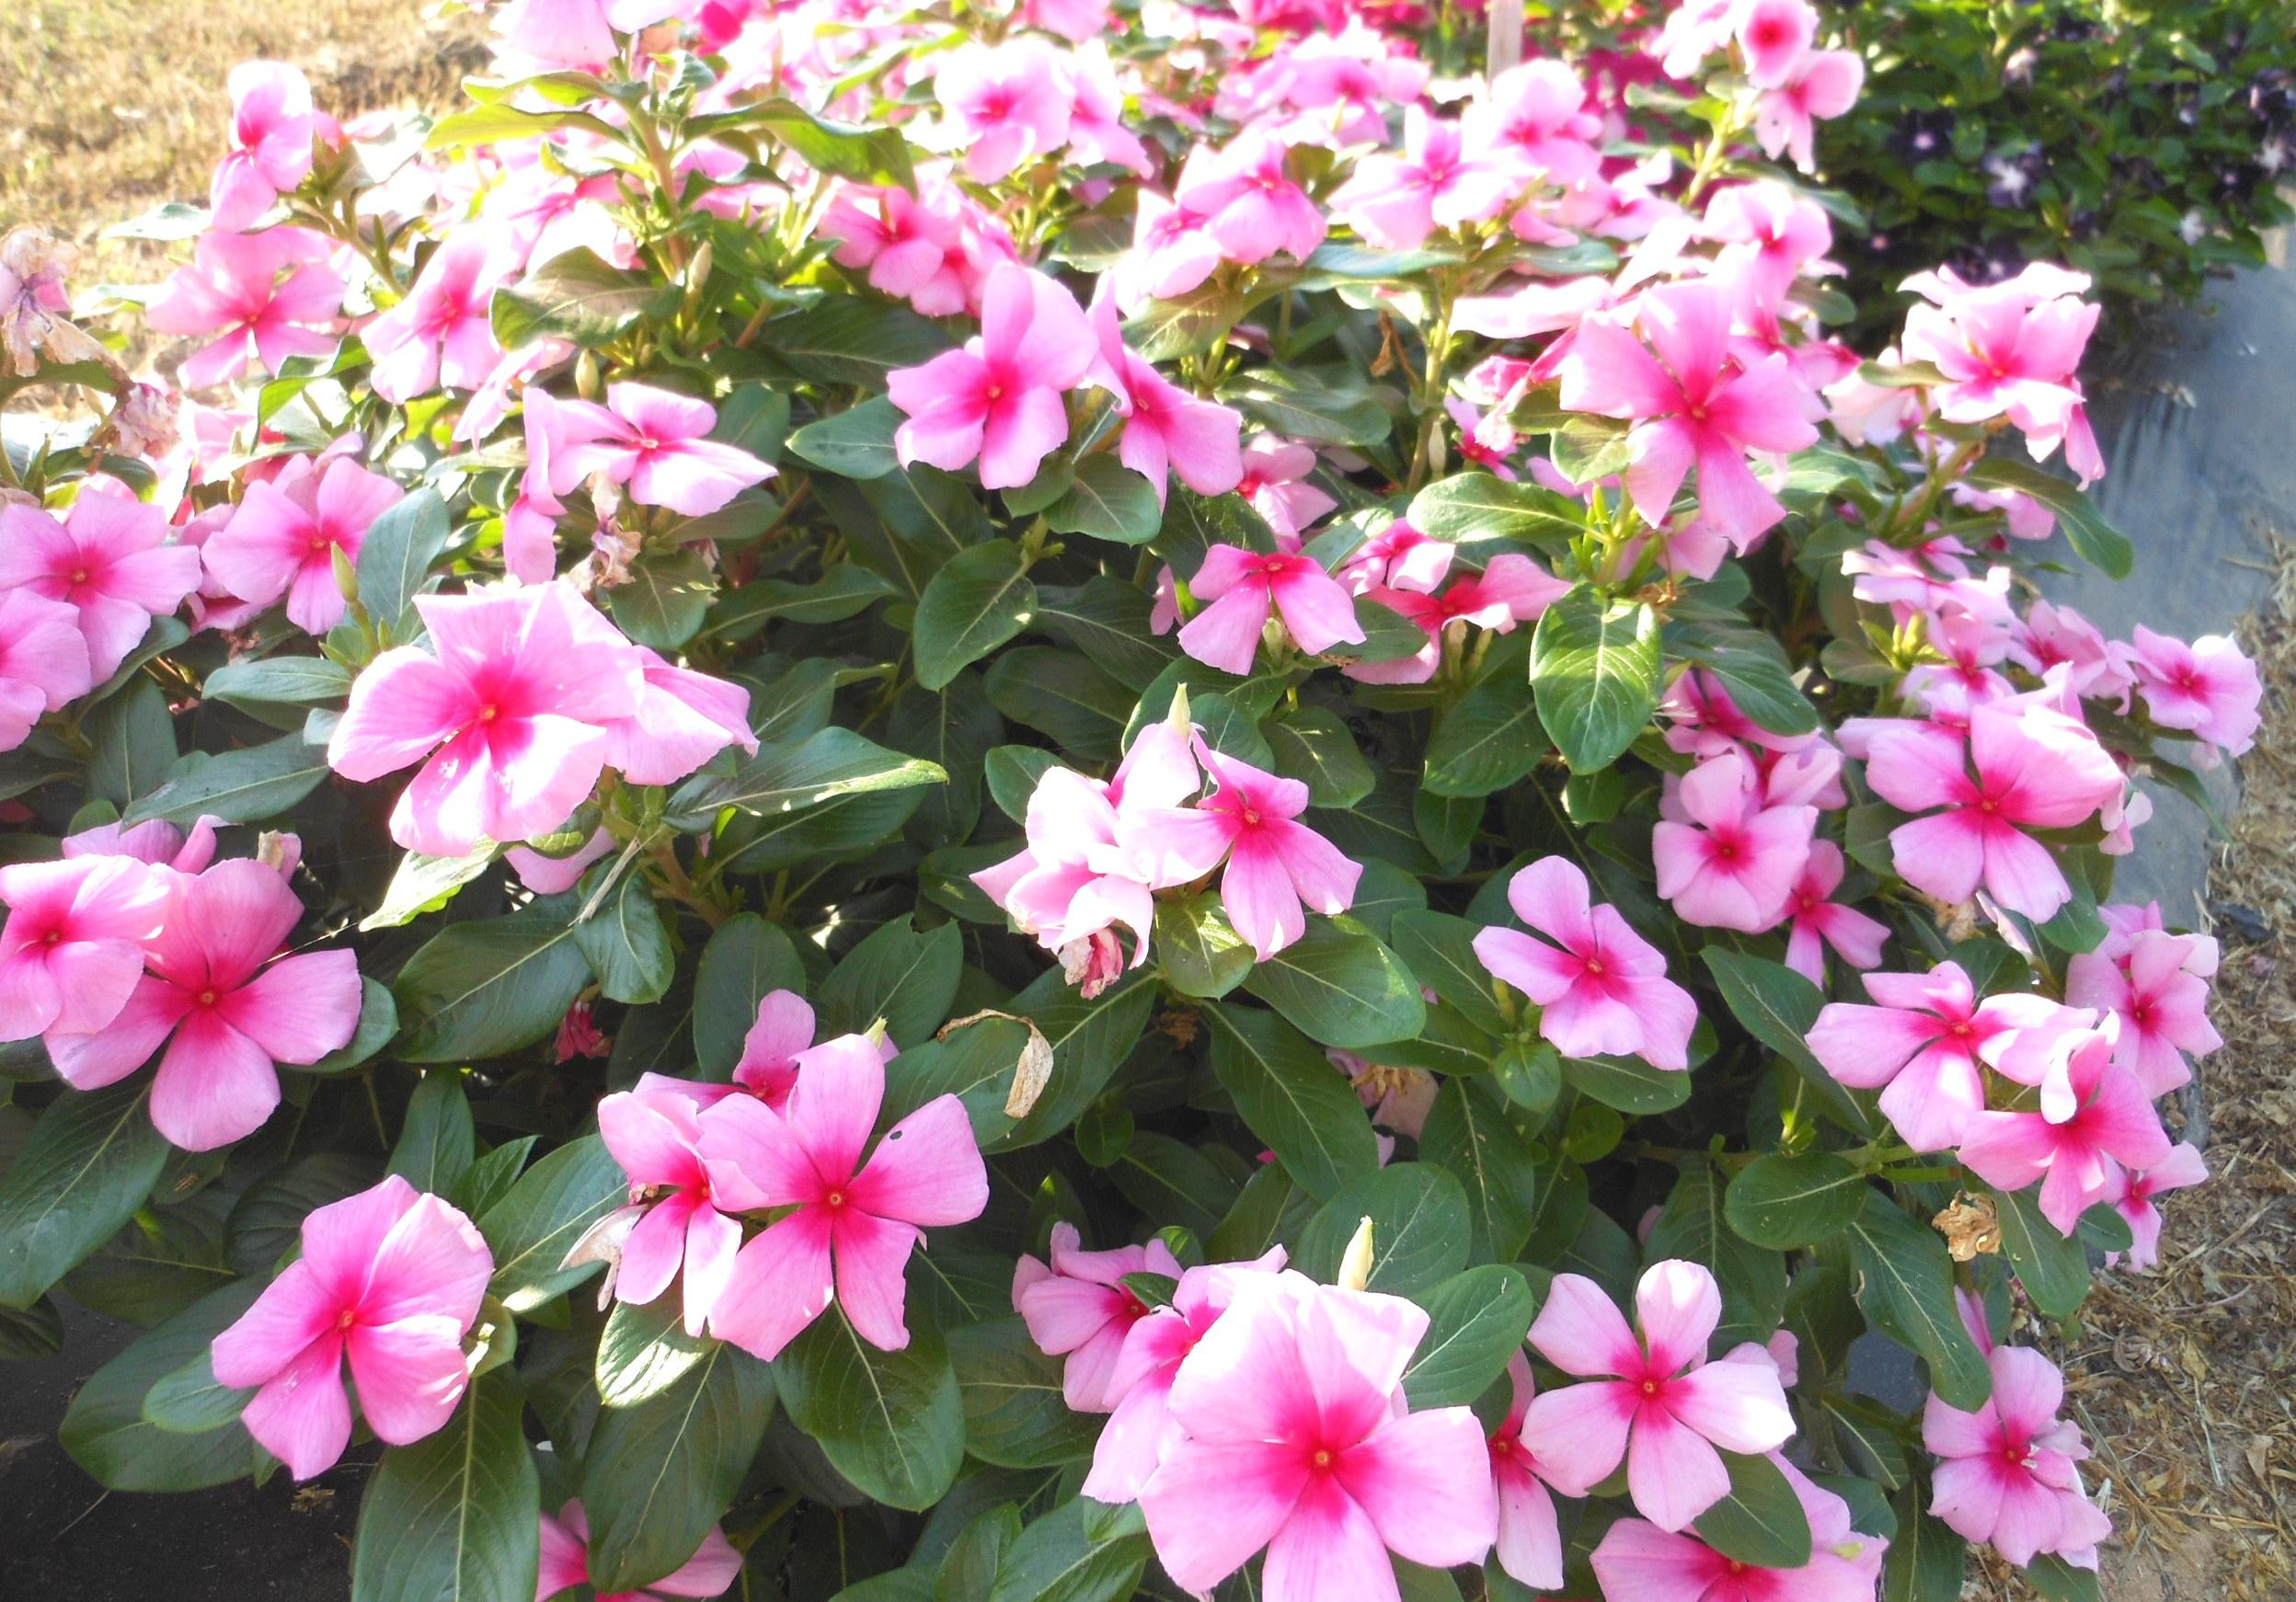 Cora And Nirvana Vinca Ornamental Plants Of The Week For June 15 2015